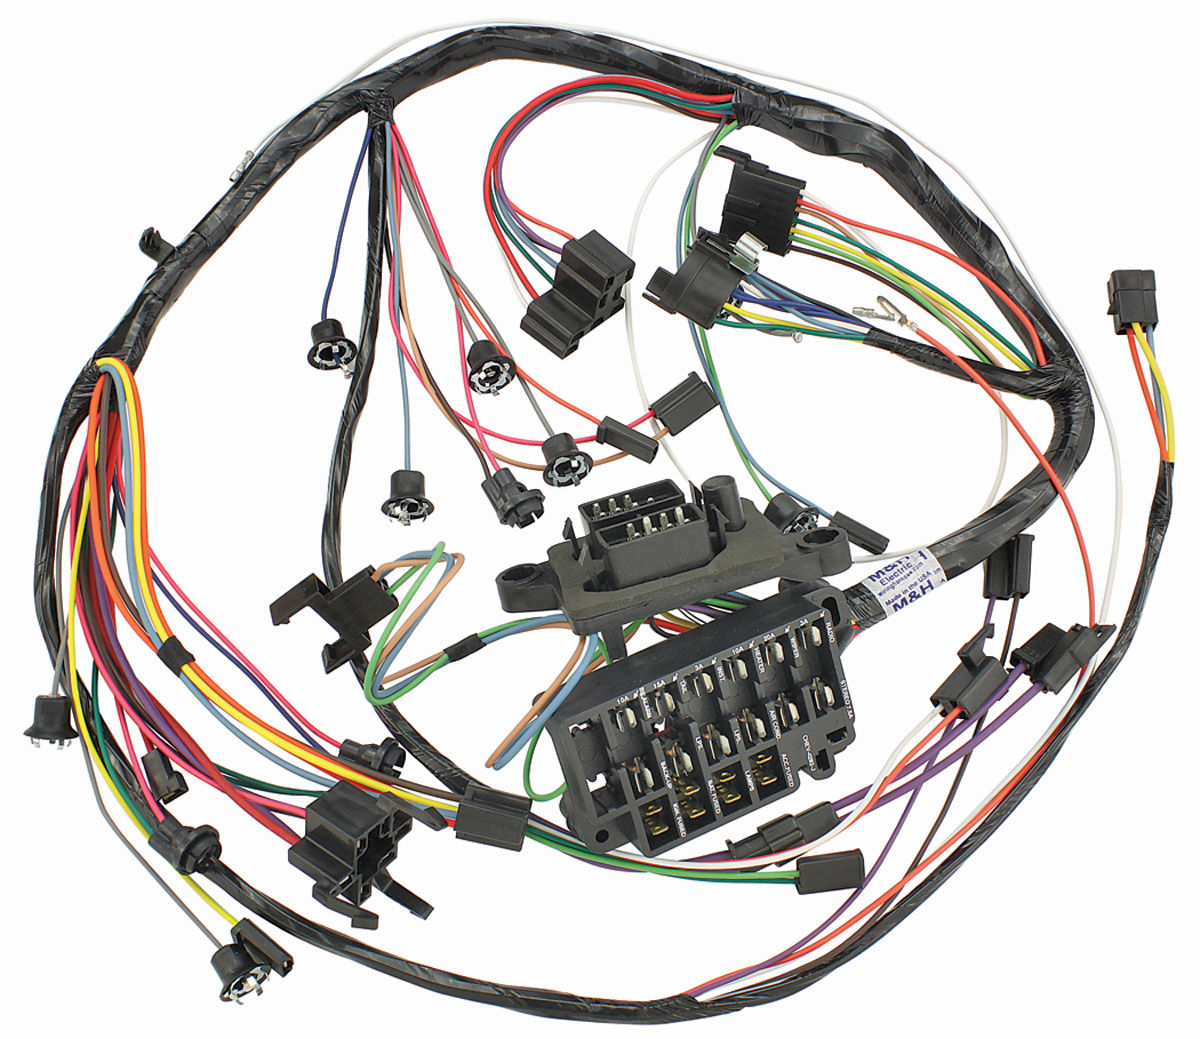 m h 1965 chevelle dash instrument panel harness all w warning lights rh  opgi com 1970 Chevelle Wiring Harness 1967 Chevelle Wiring Schematic Online